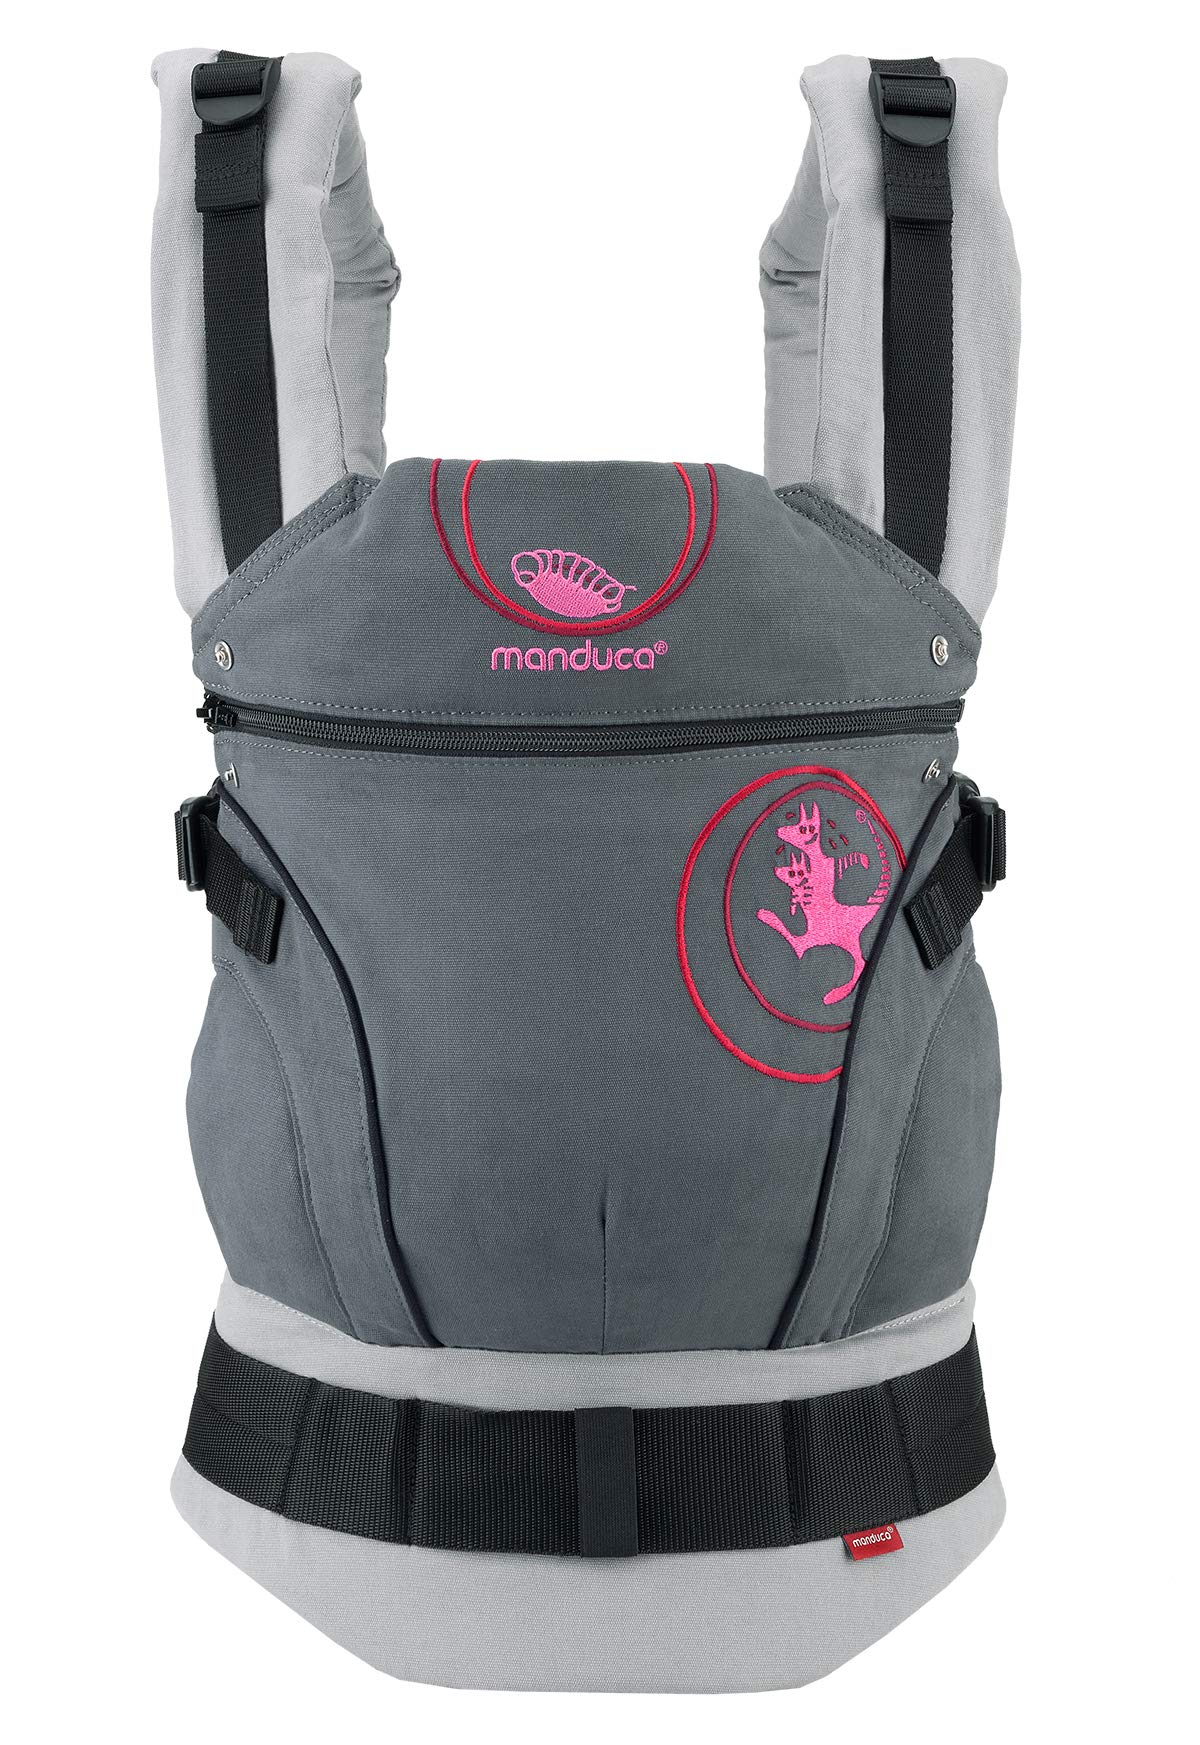 81QoqWC7WKL - manduca First Baby Carrier > PureCotton < Mochila Portabebe Ergonomica, Algodón Orgánico, Extensión de Espalda Patentada, para Recién Nacidos y Bebés de 3,5 a 20 kg